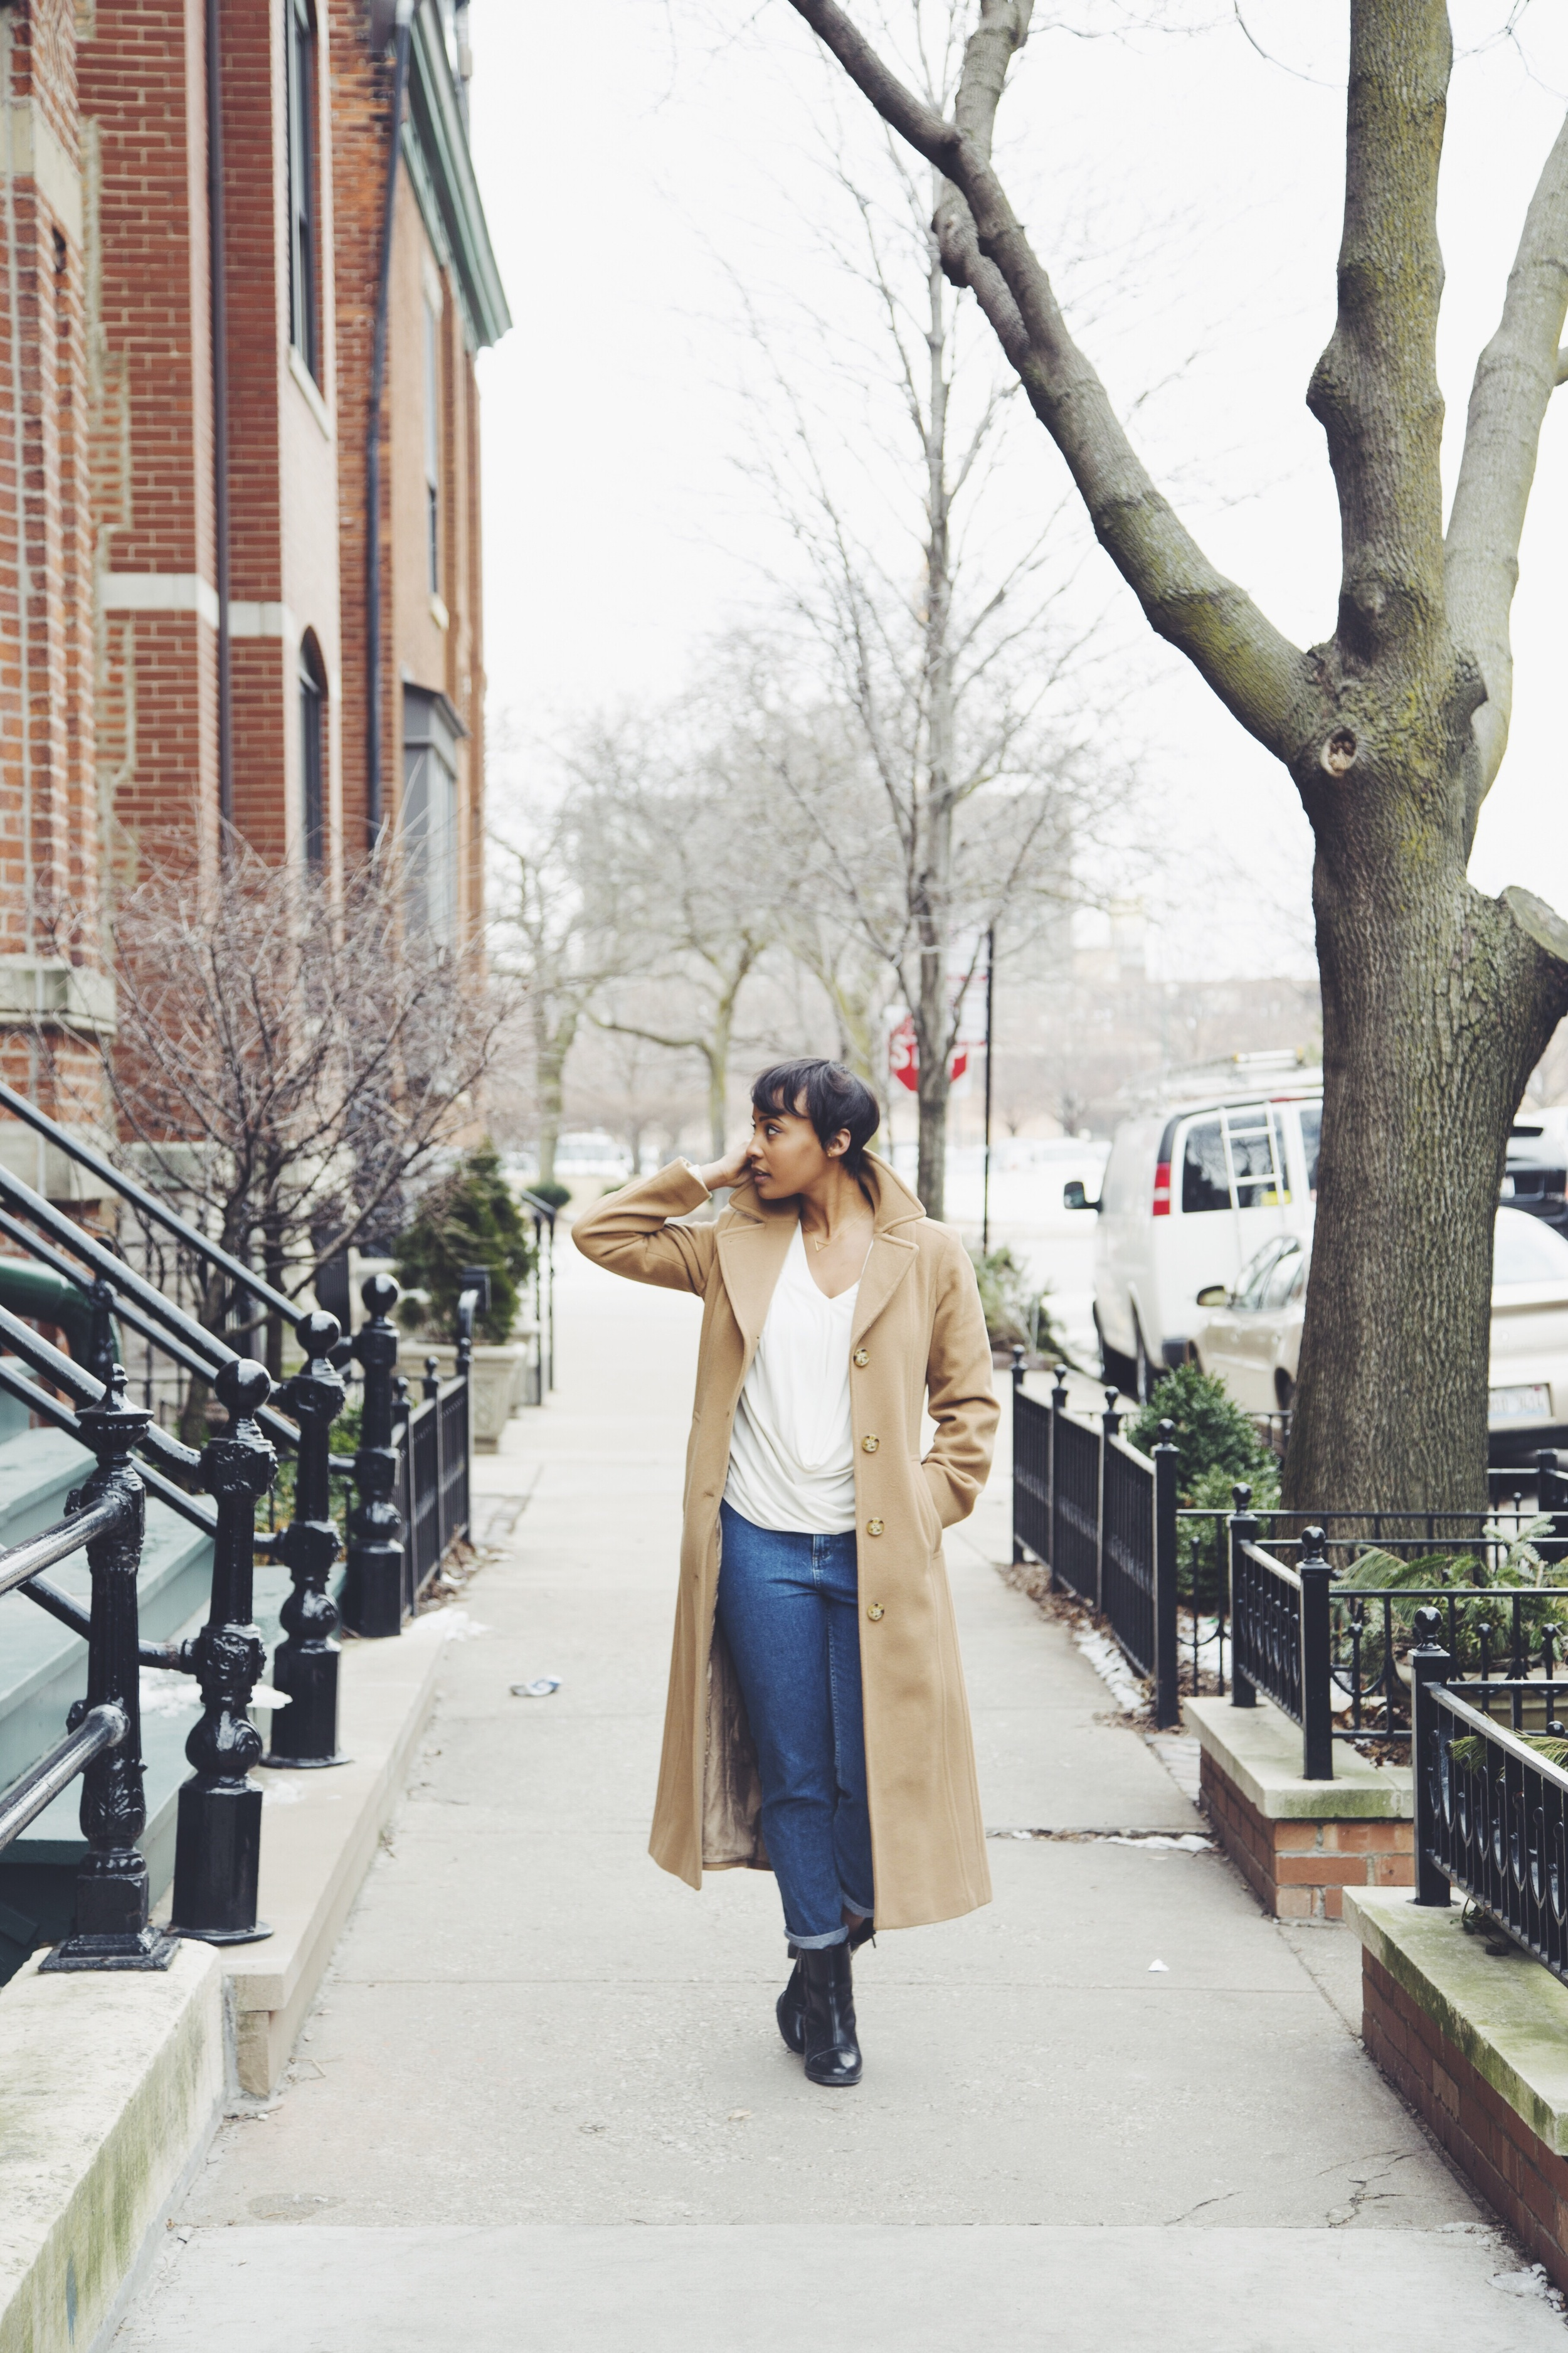 Coat: Anne Klein / Shirt: Thrifted / Jeans: Topshop / Shoes: Zara